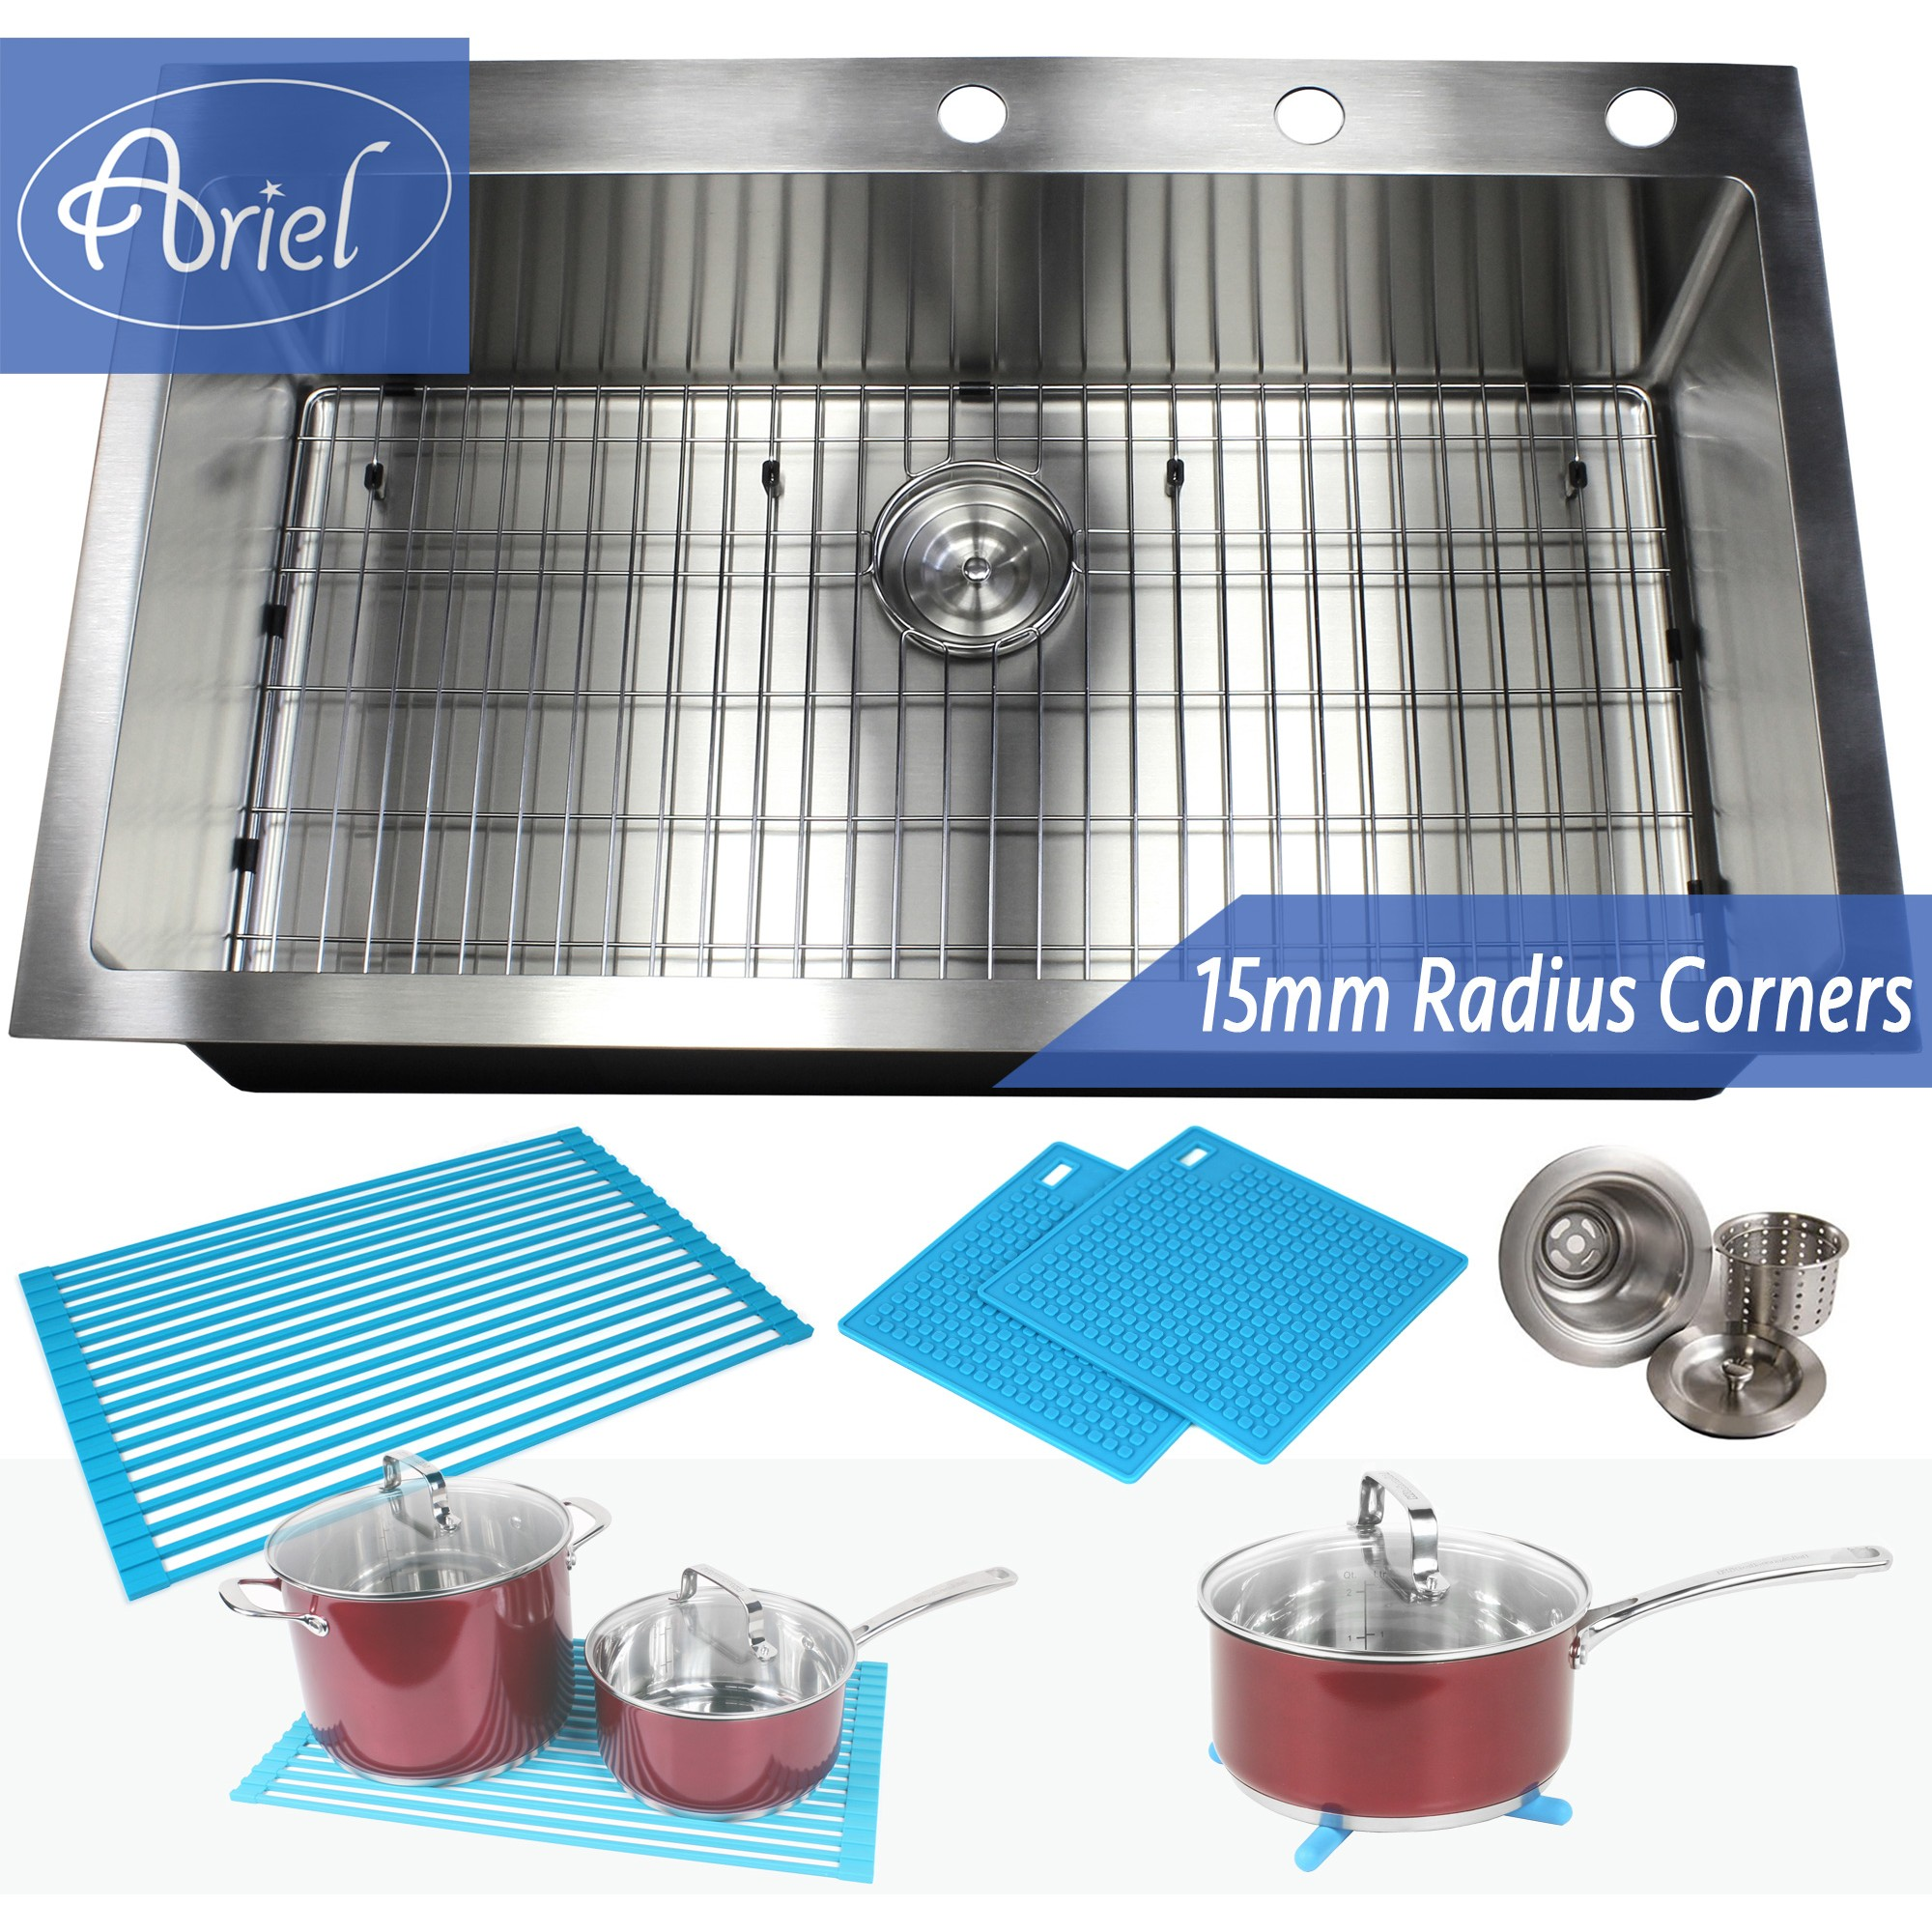 36 Inch Drop-In / Top-Mount Stainless Steel Single Bowl Kitchen Sink ...